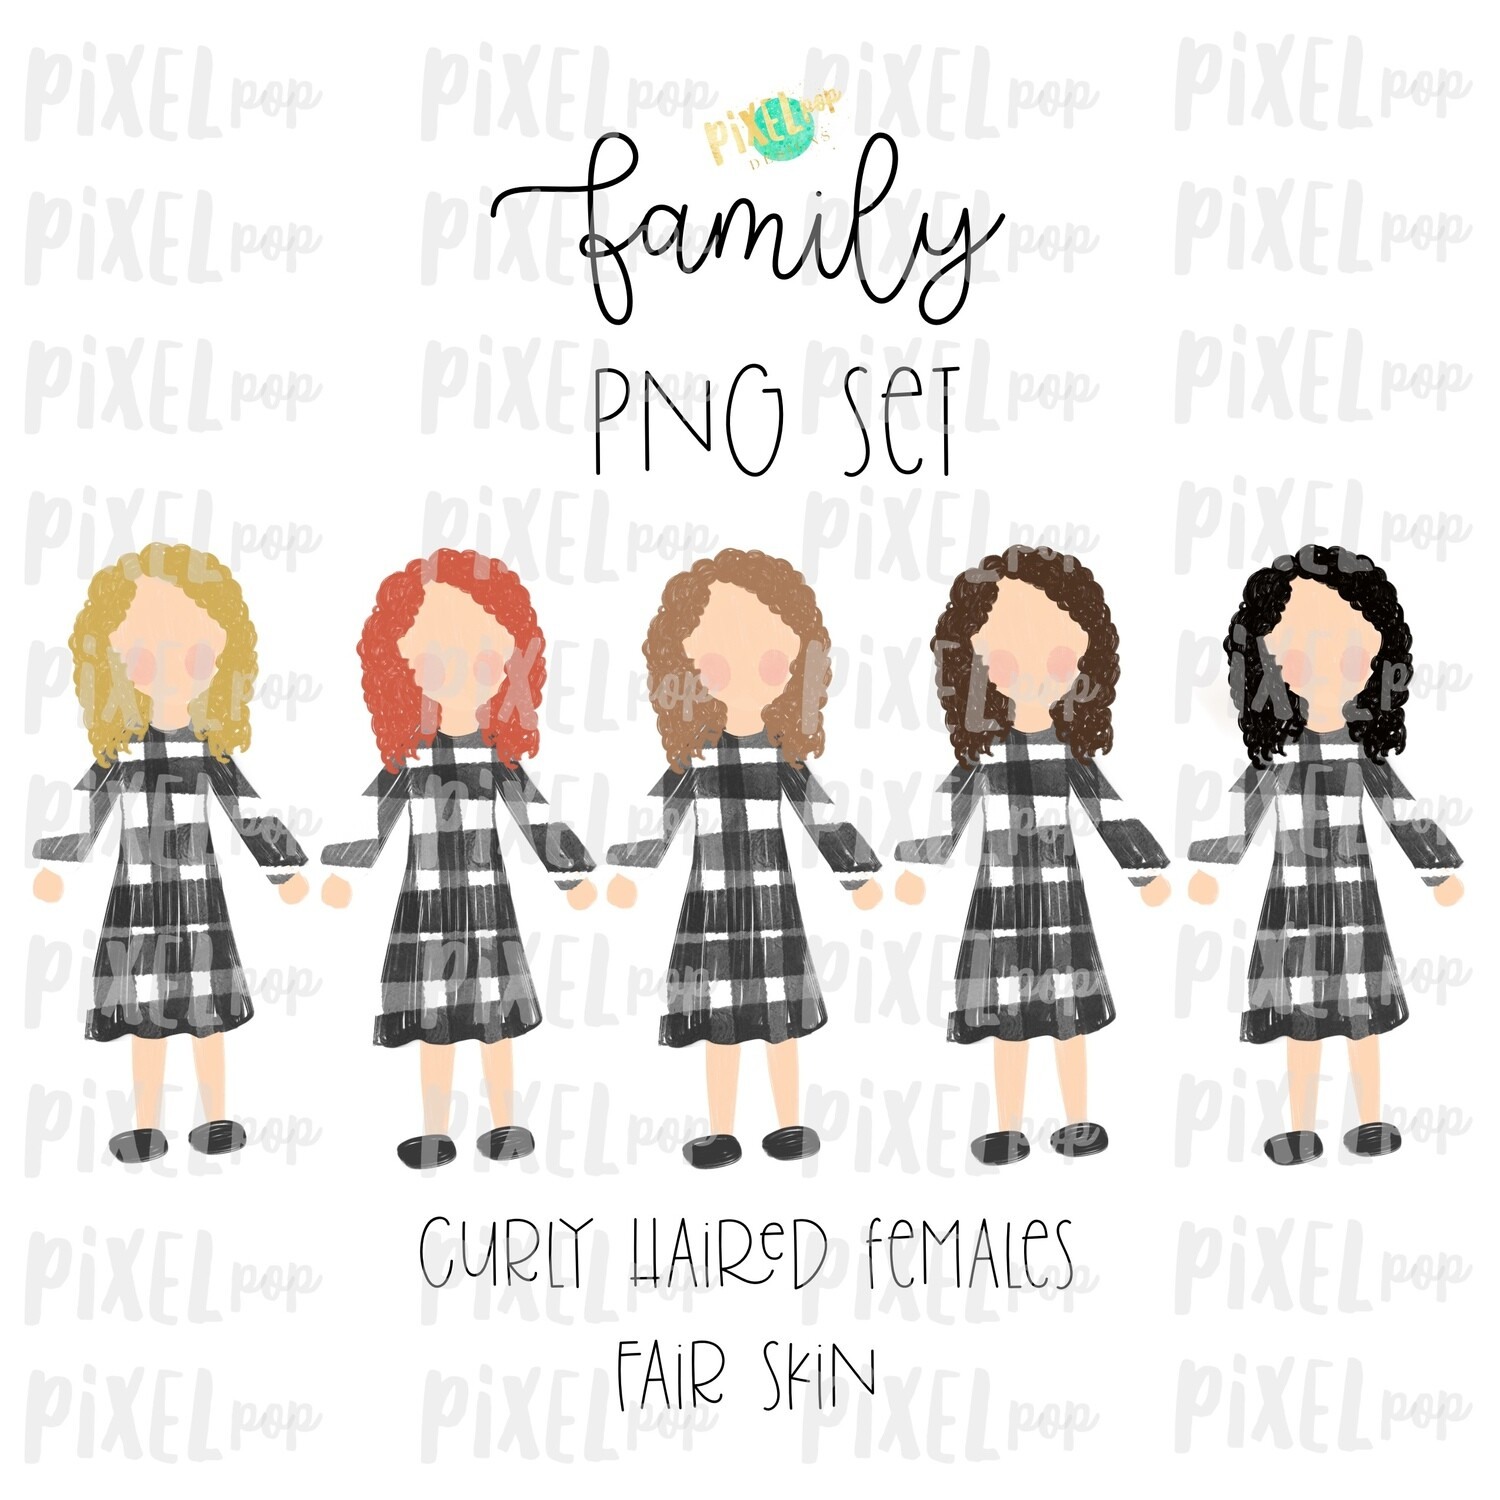 Curly Haired Females (Female E) with Fair Skin Tones Stick People Figure Family Members Set PNG Sublimation | Family Ornament | Portrait